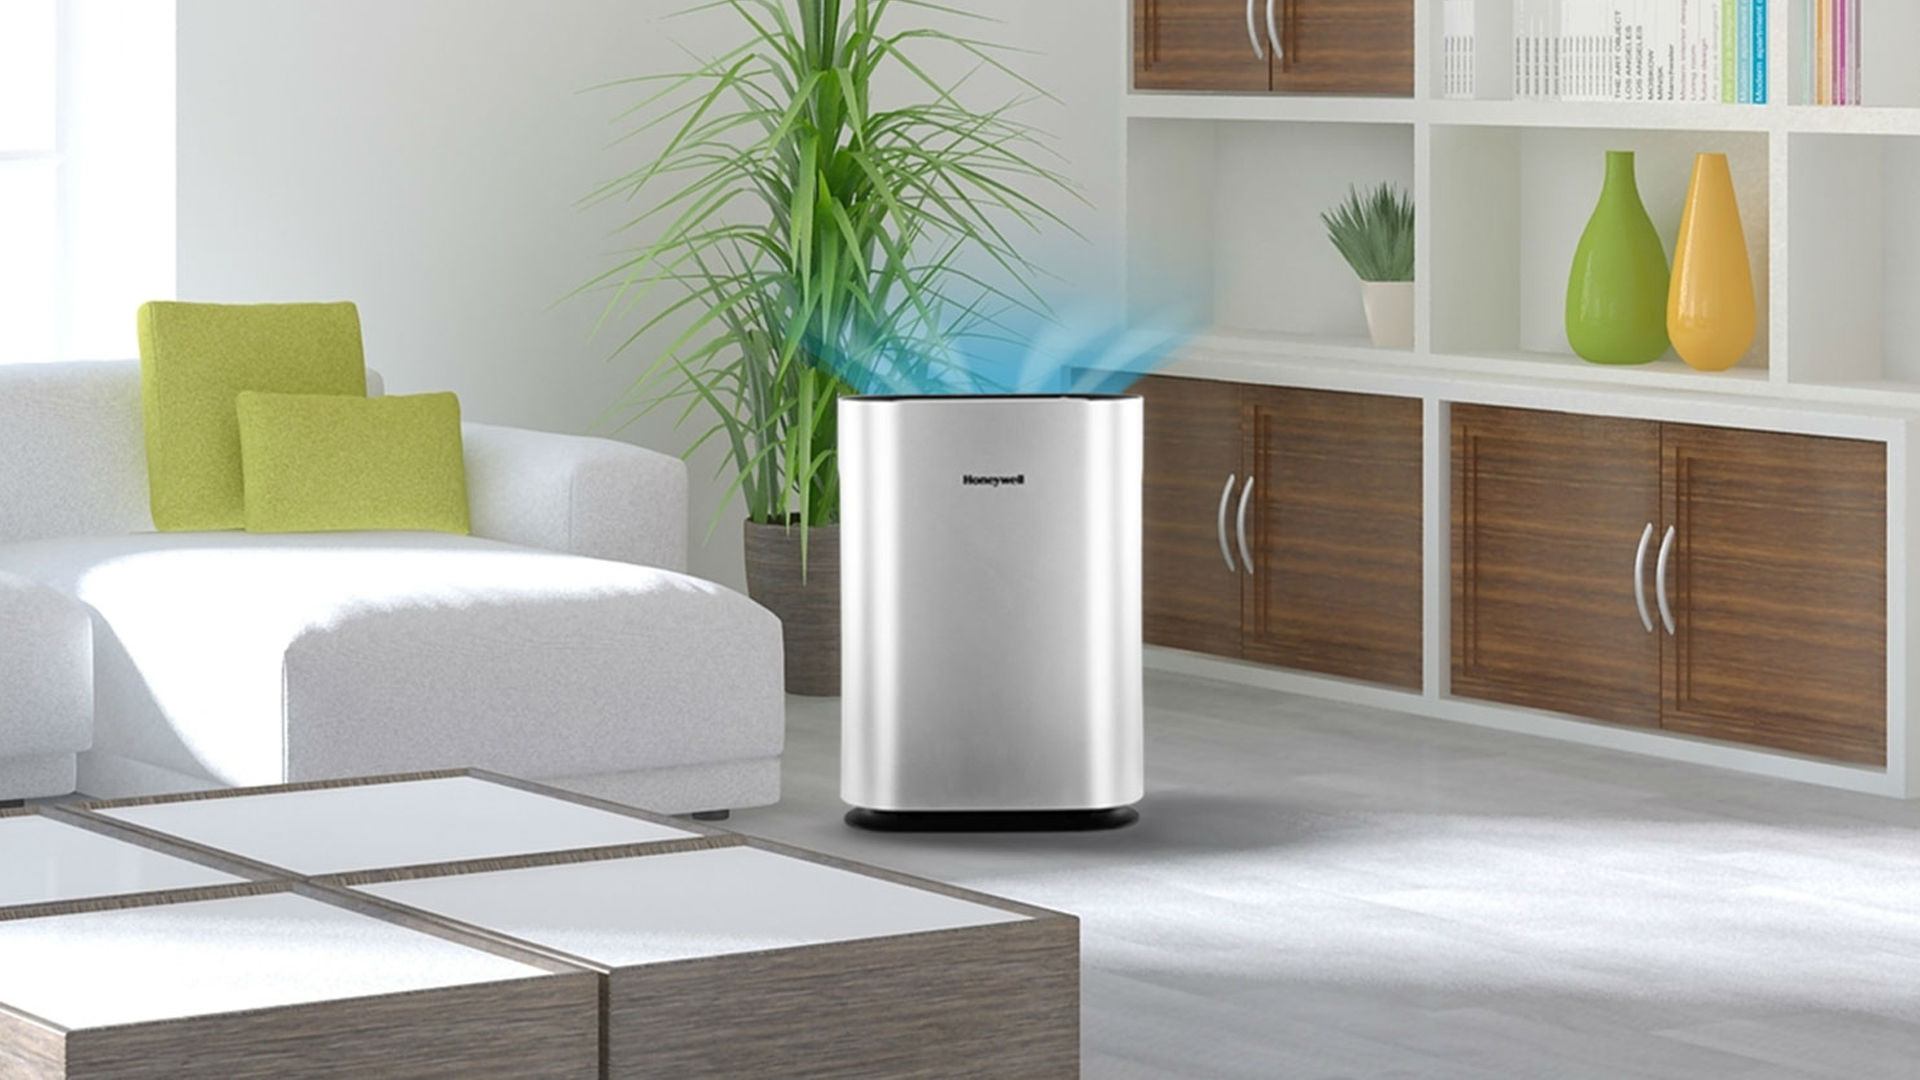 Airtouch Advanced HEPA Air Filtration And Purifier System